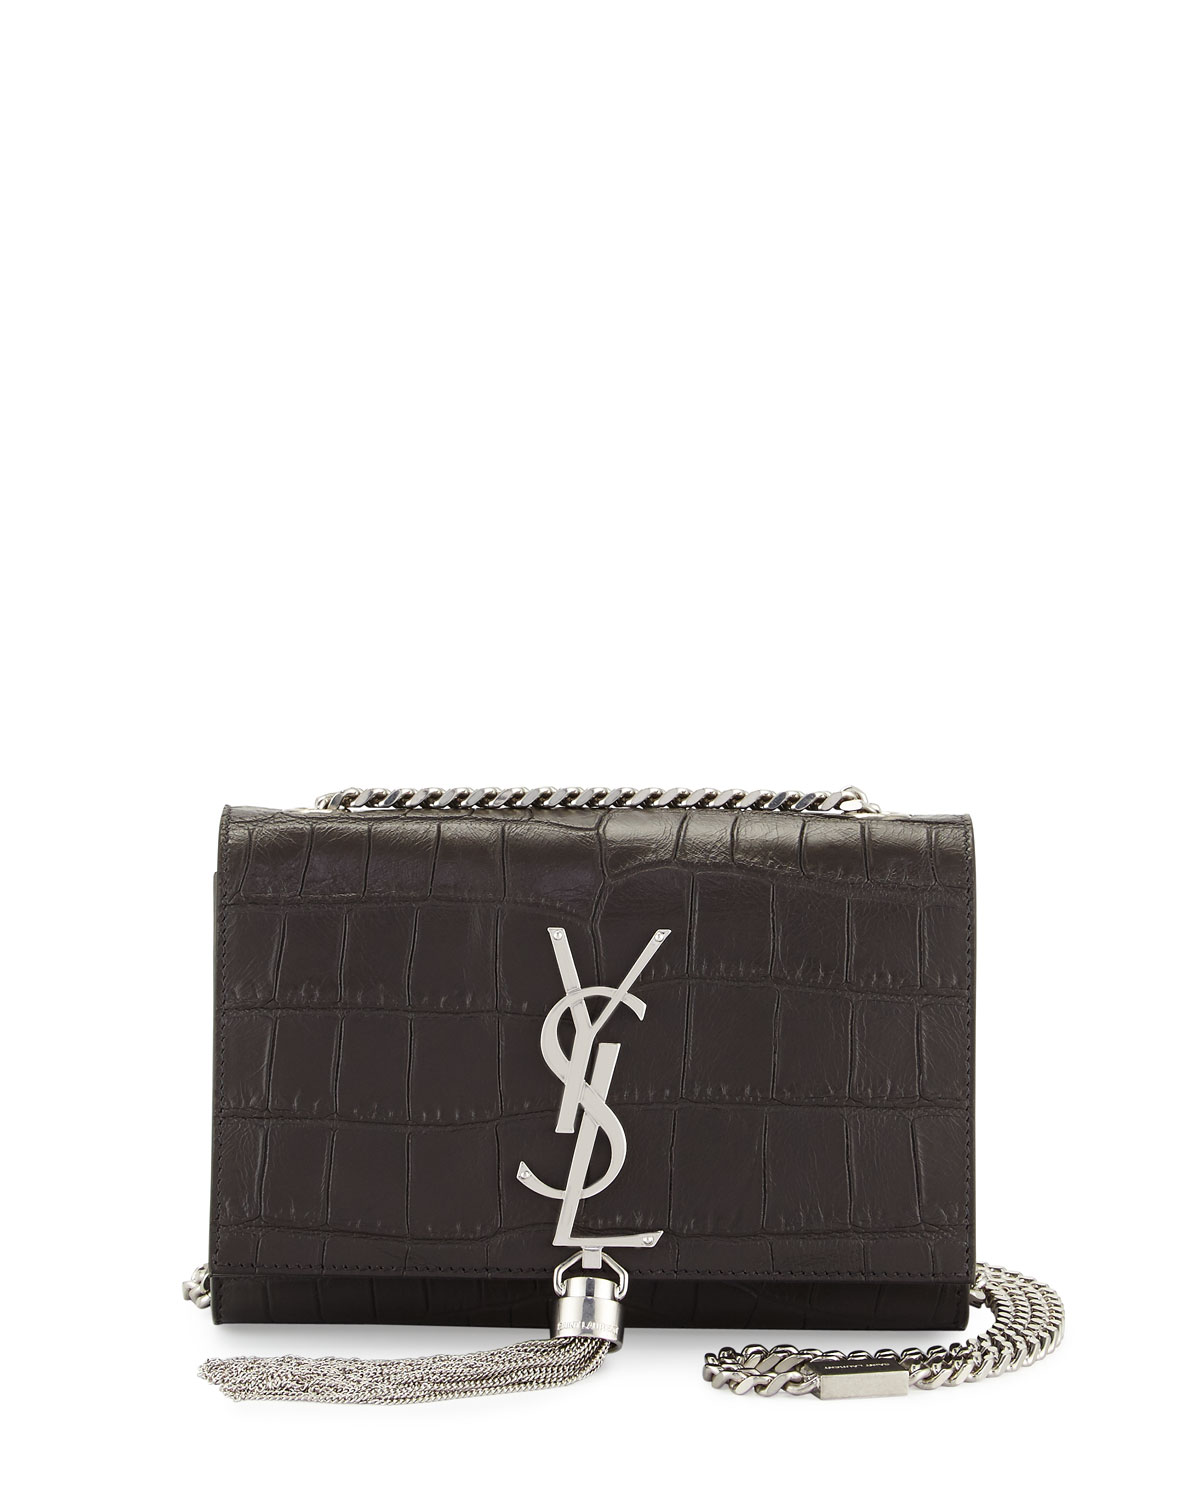 5ed0c8ec8e6d Saint Laurent Monogram Small Kate Tassel Crocodile-Embossed Shoulder ...